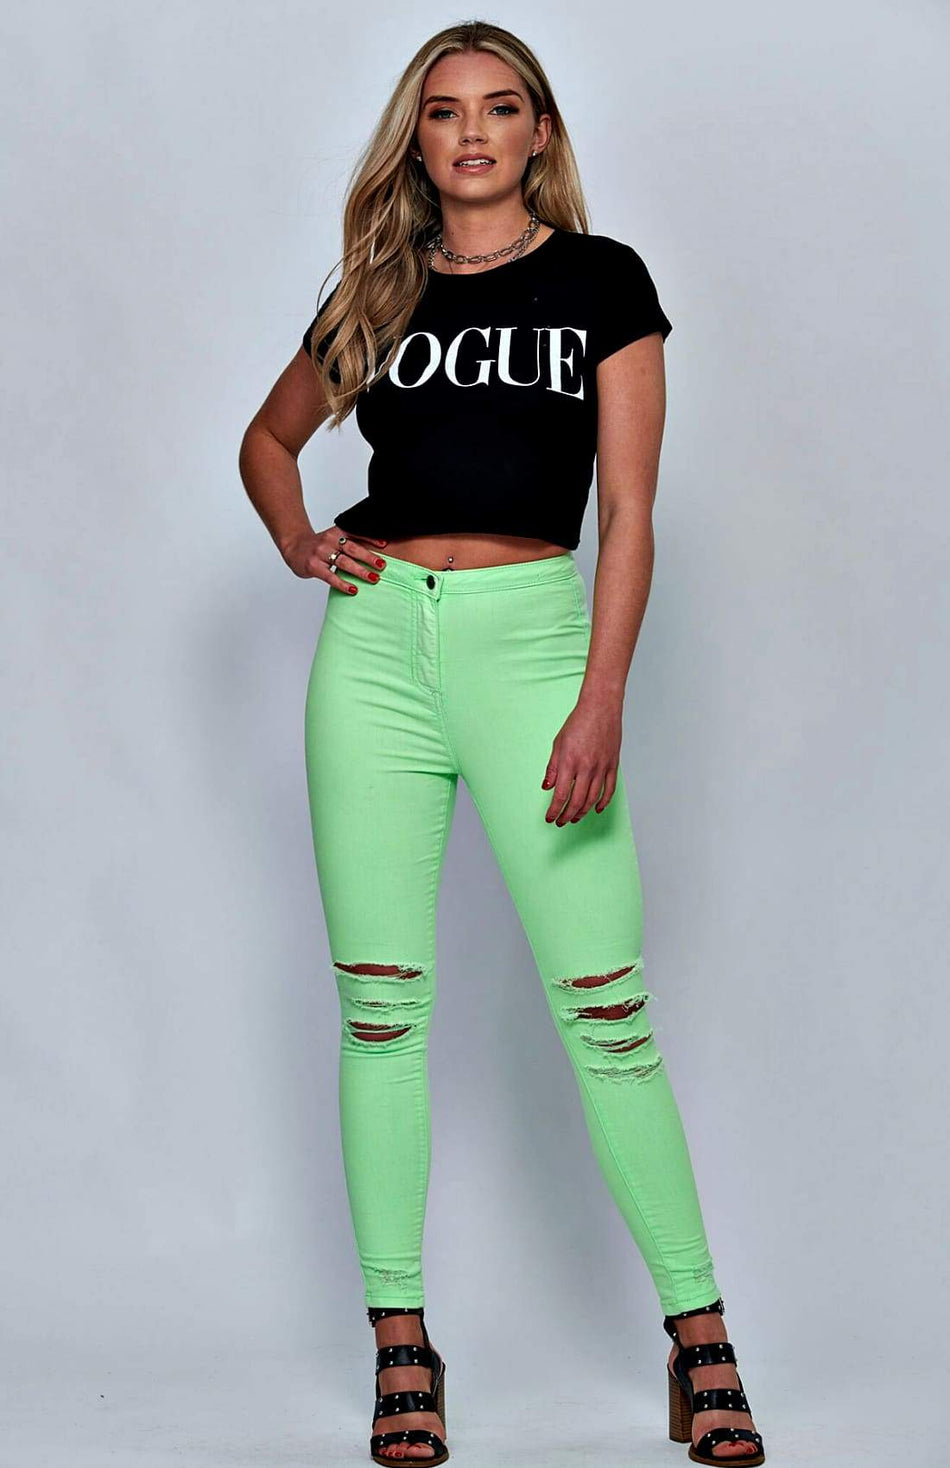 Black Vogue Slogan T-Shirt